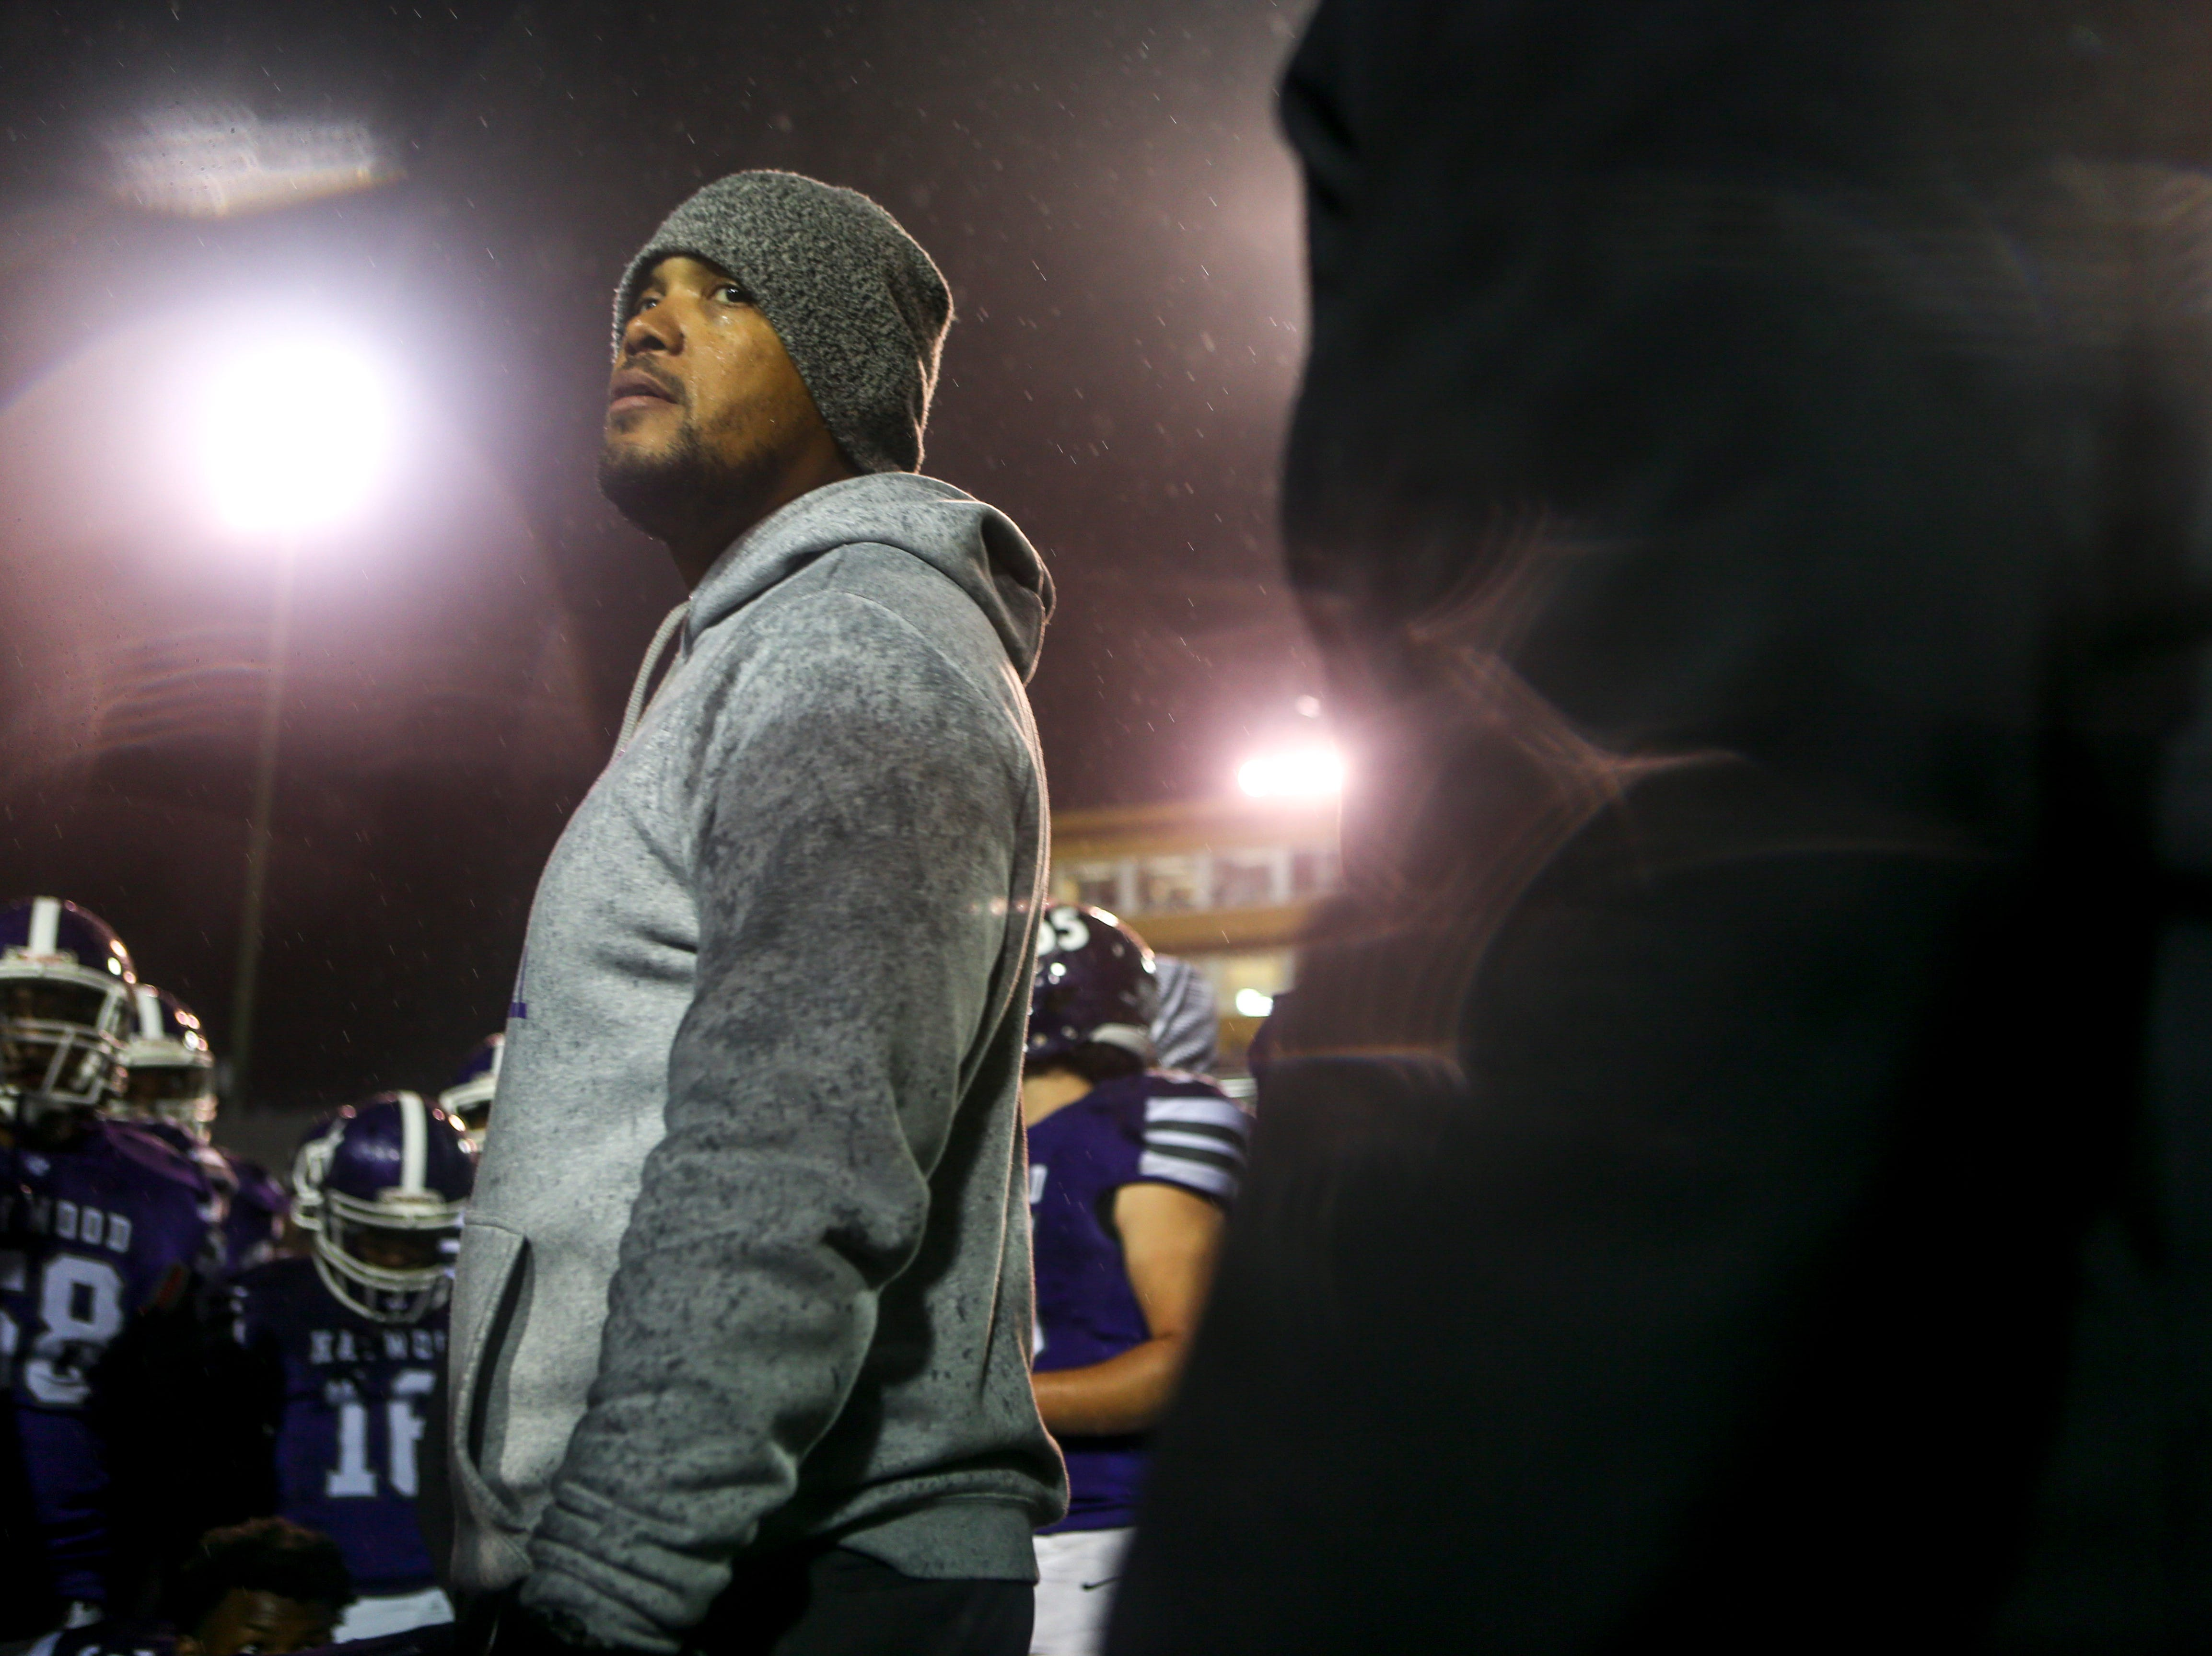 Steve Hookfin looks out over his players in a huddle after losing the Class 4A Blue Cross Bowl between Haywood and Greeneville at Tennessee Tech's Tucker Stadium in Cookeville, Tenn., on Thursday, Nov. 29, 2018.